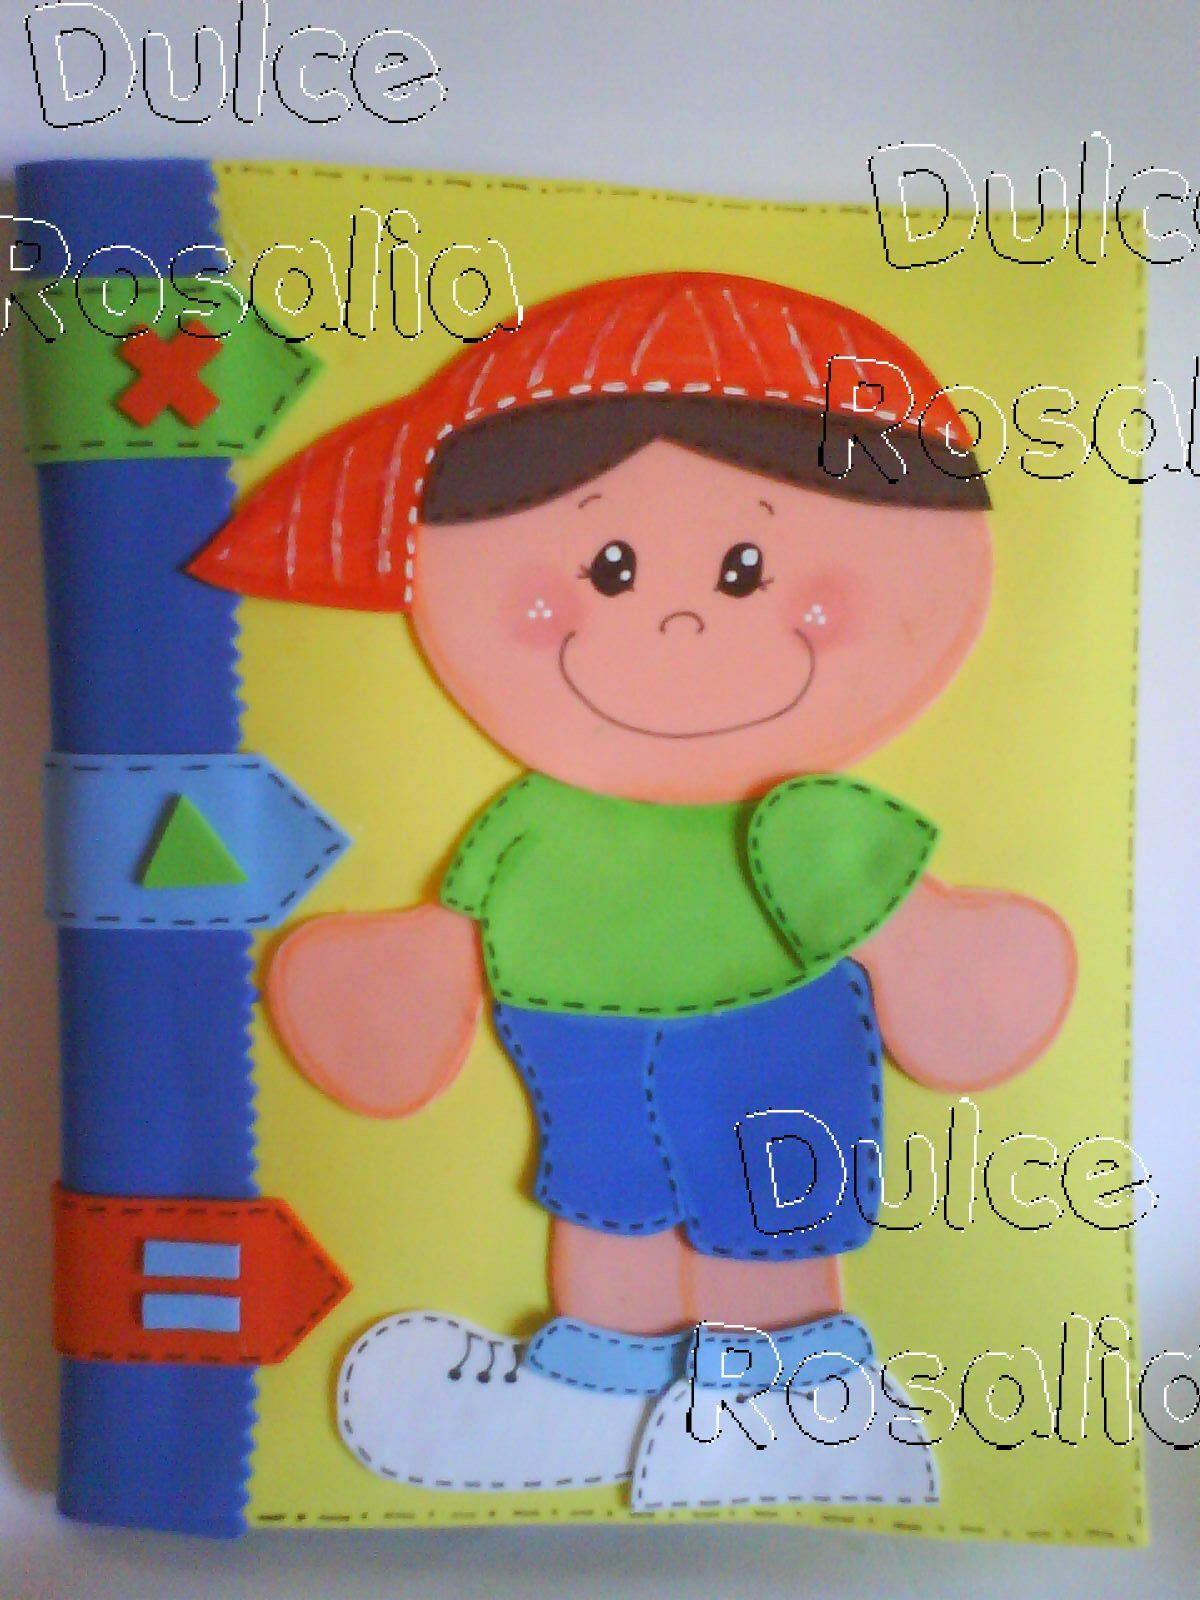 Molde fomi para decorar cuaderno manualidades infantiles and post pic goma eva pinterest - Decorar fotos infantiles ...